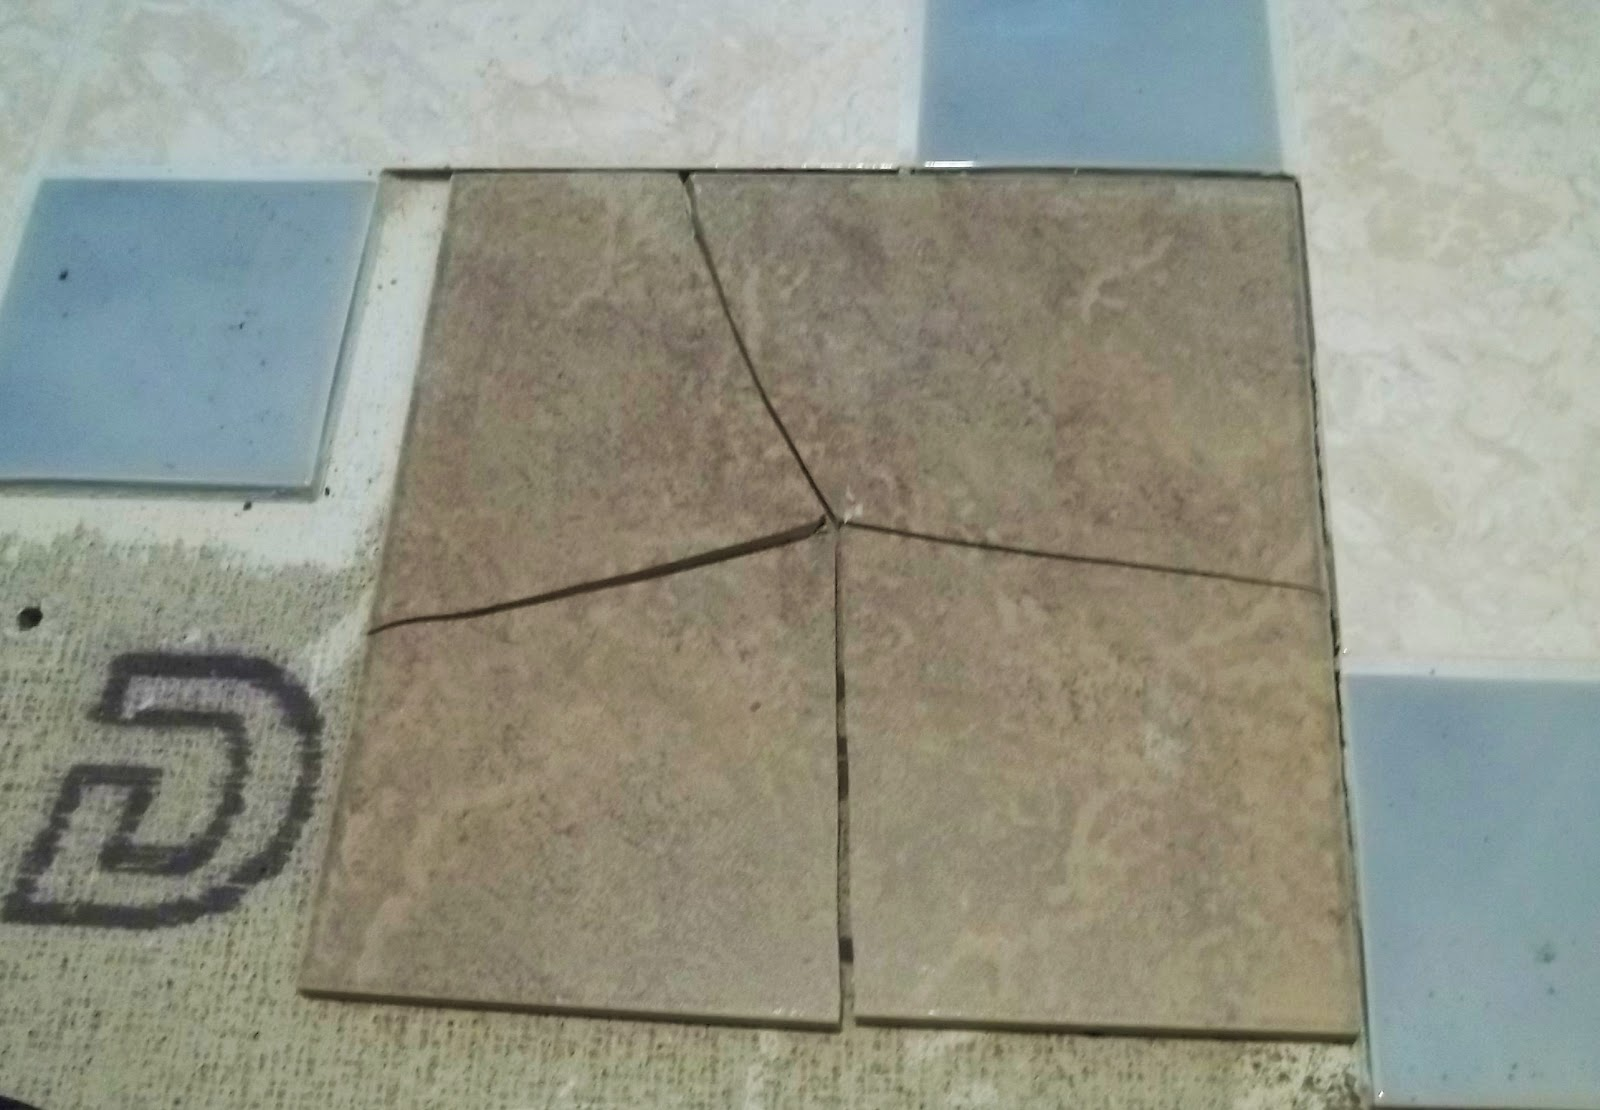 Kitchens baths by dzyne how to replace a damaged ceramic tile broken floor tile dailygadgetfo Gallery